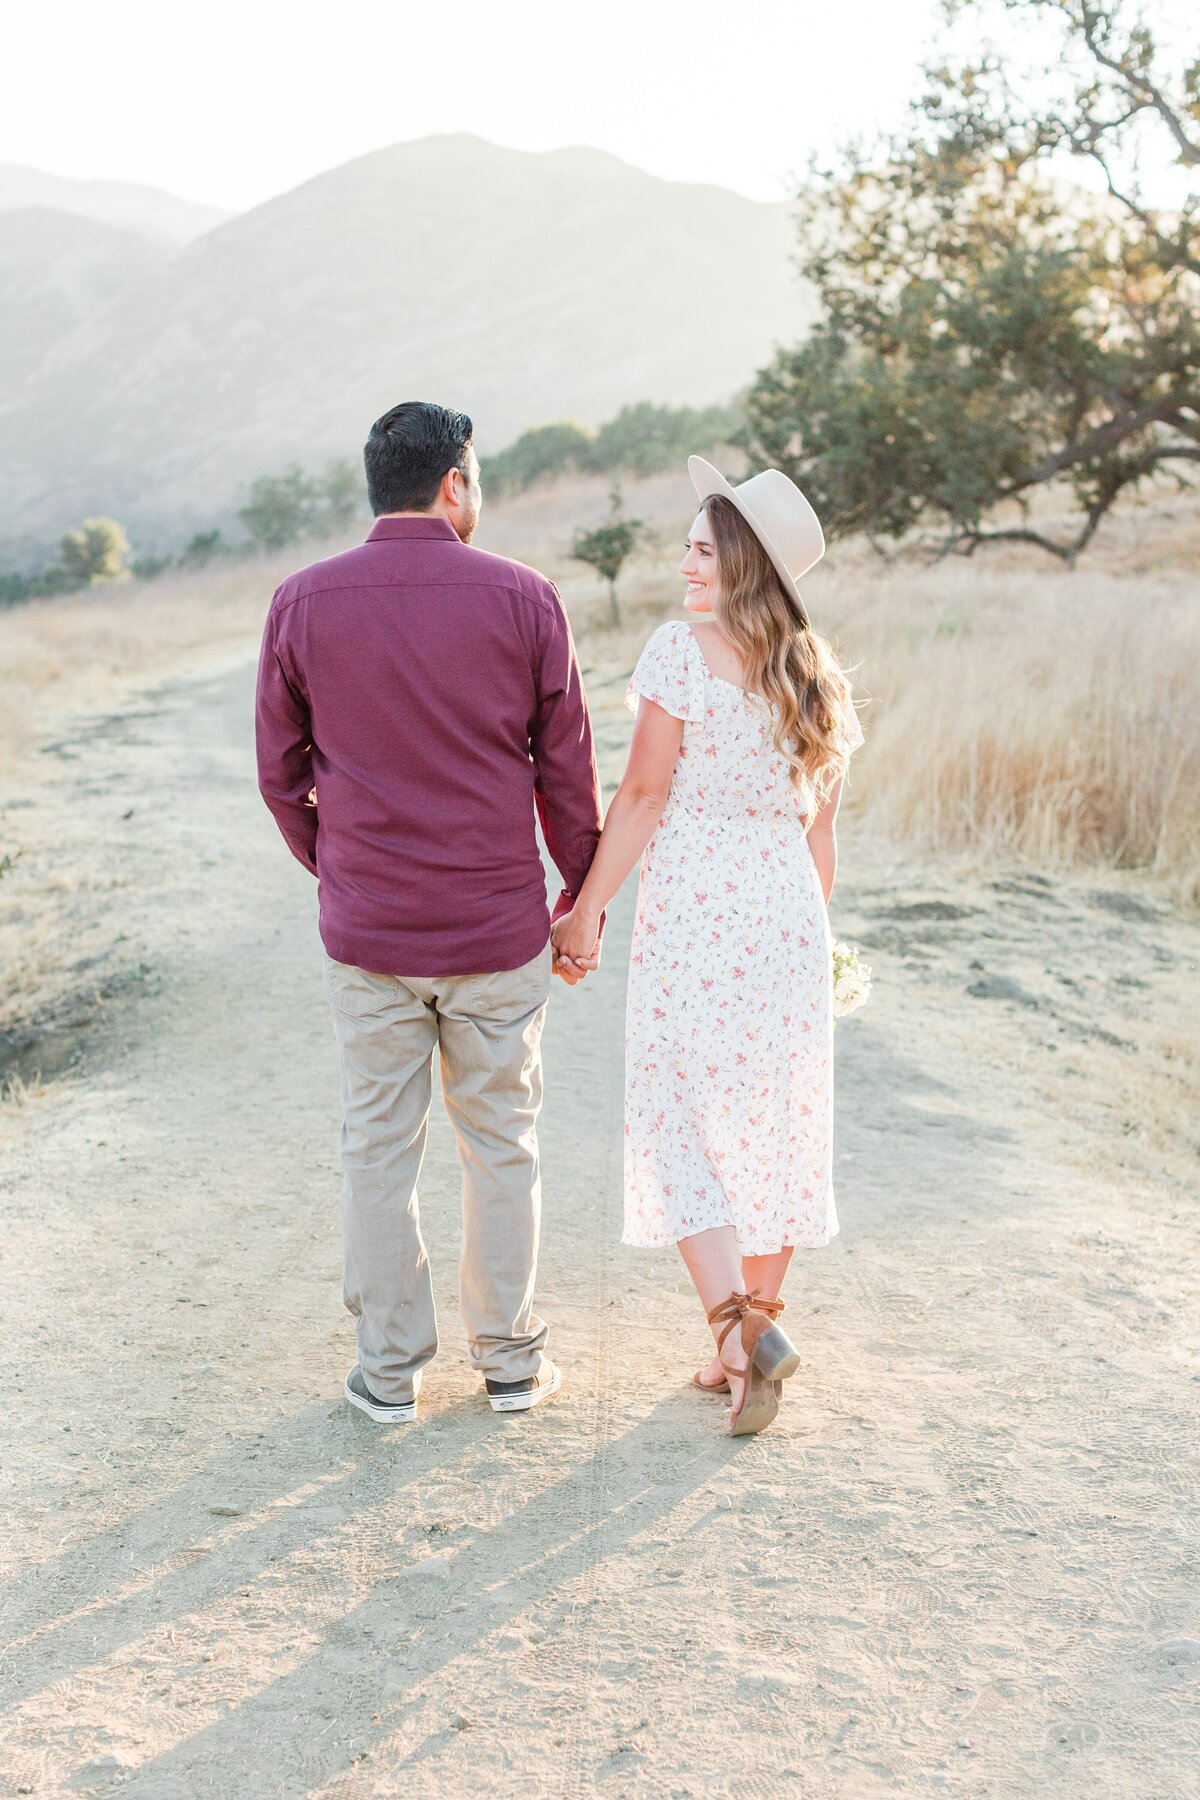 blog-Malibu-State-Creek-Park-Engagament-Shoot-boho-0065